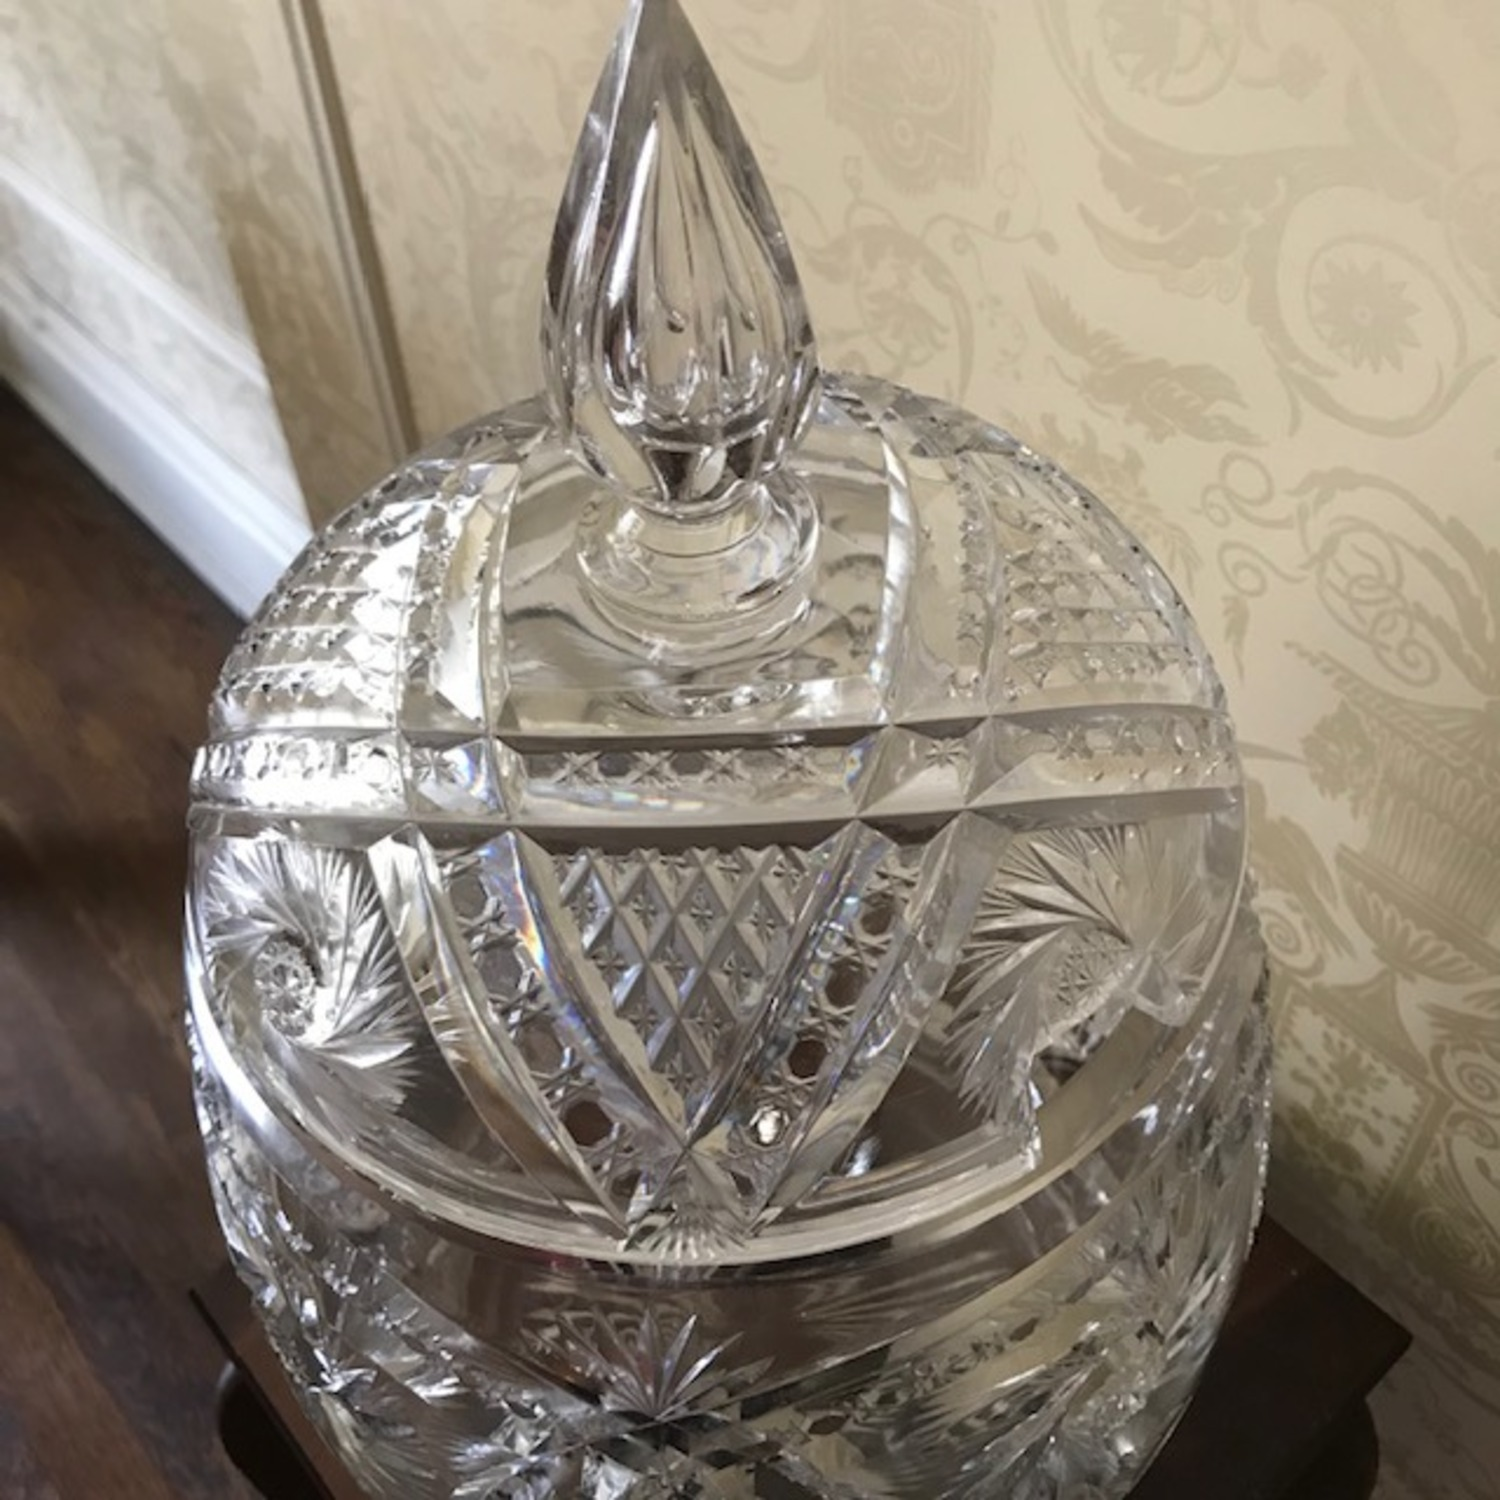 Extraordinary Antique 1800's Crystal Punch Bowl - image-7